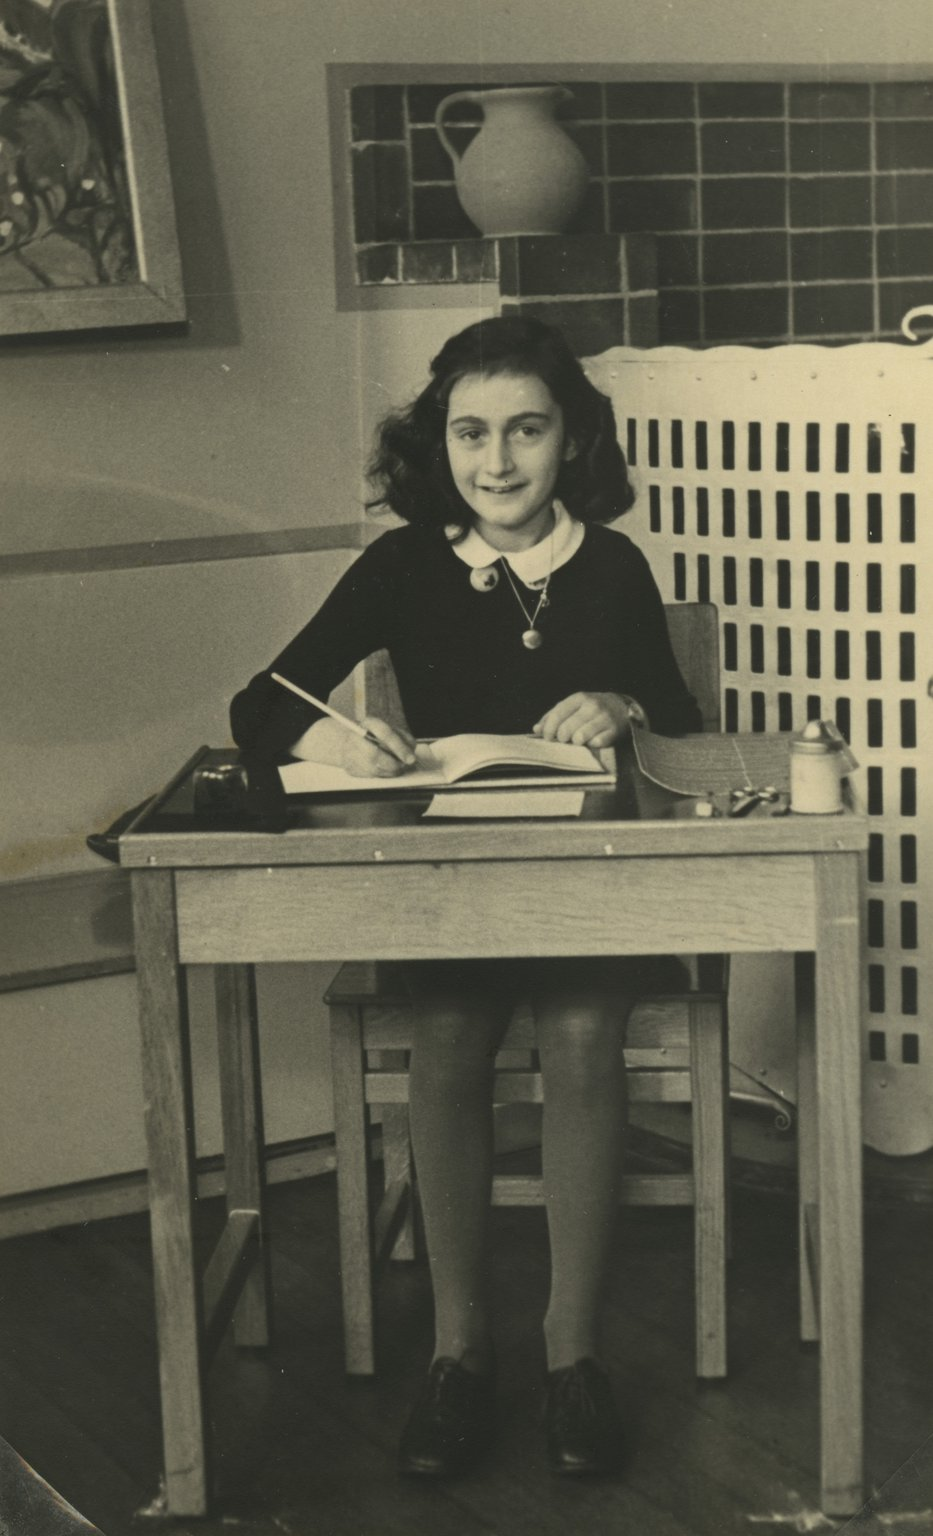 Anne in her final year of primary school, 1940.||Credits: Anne Frank House